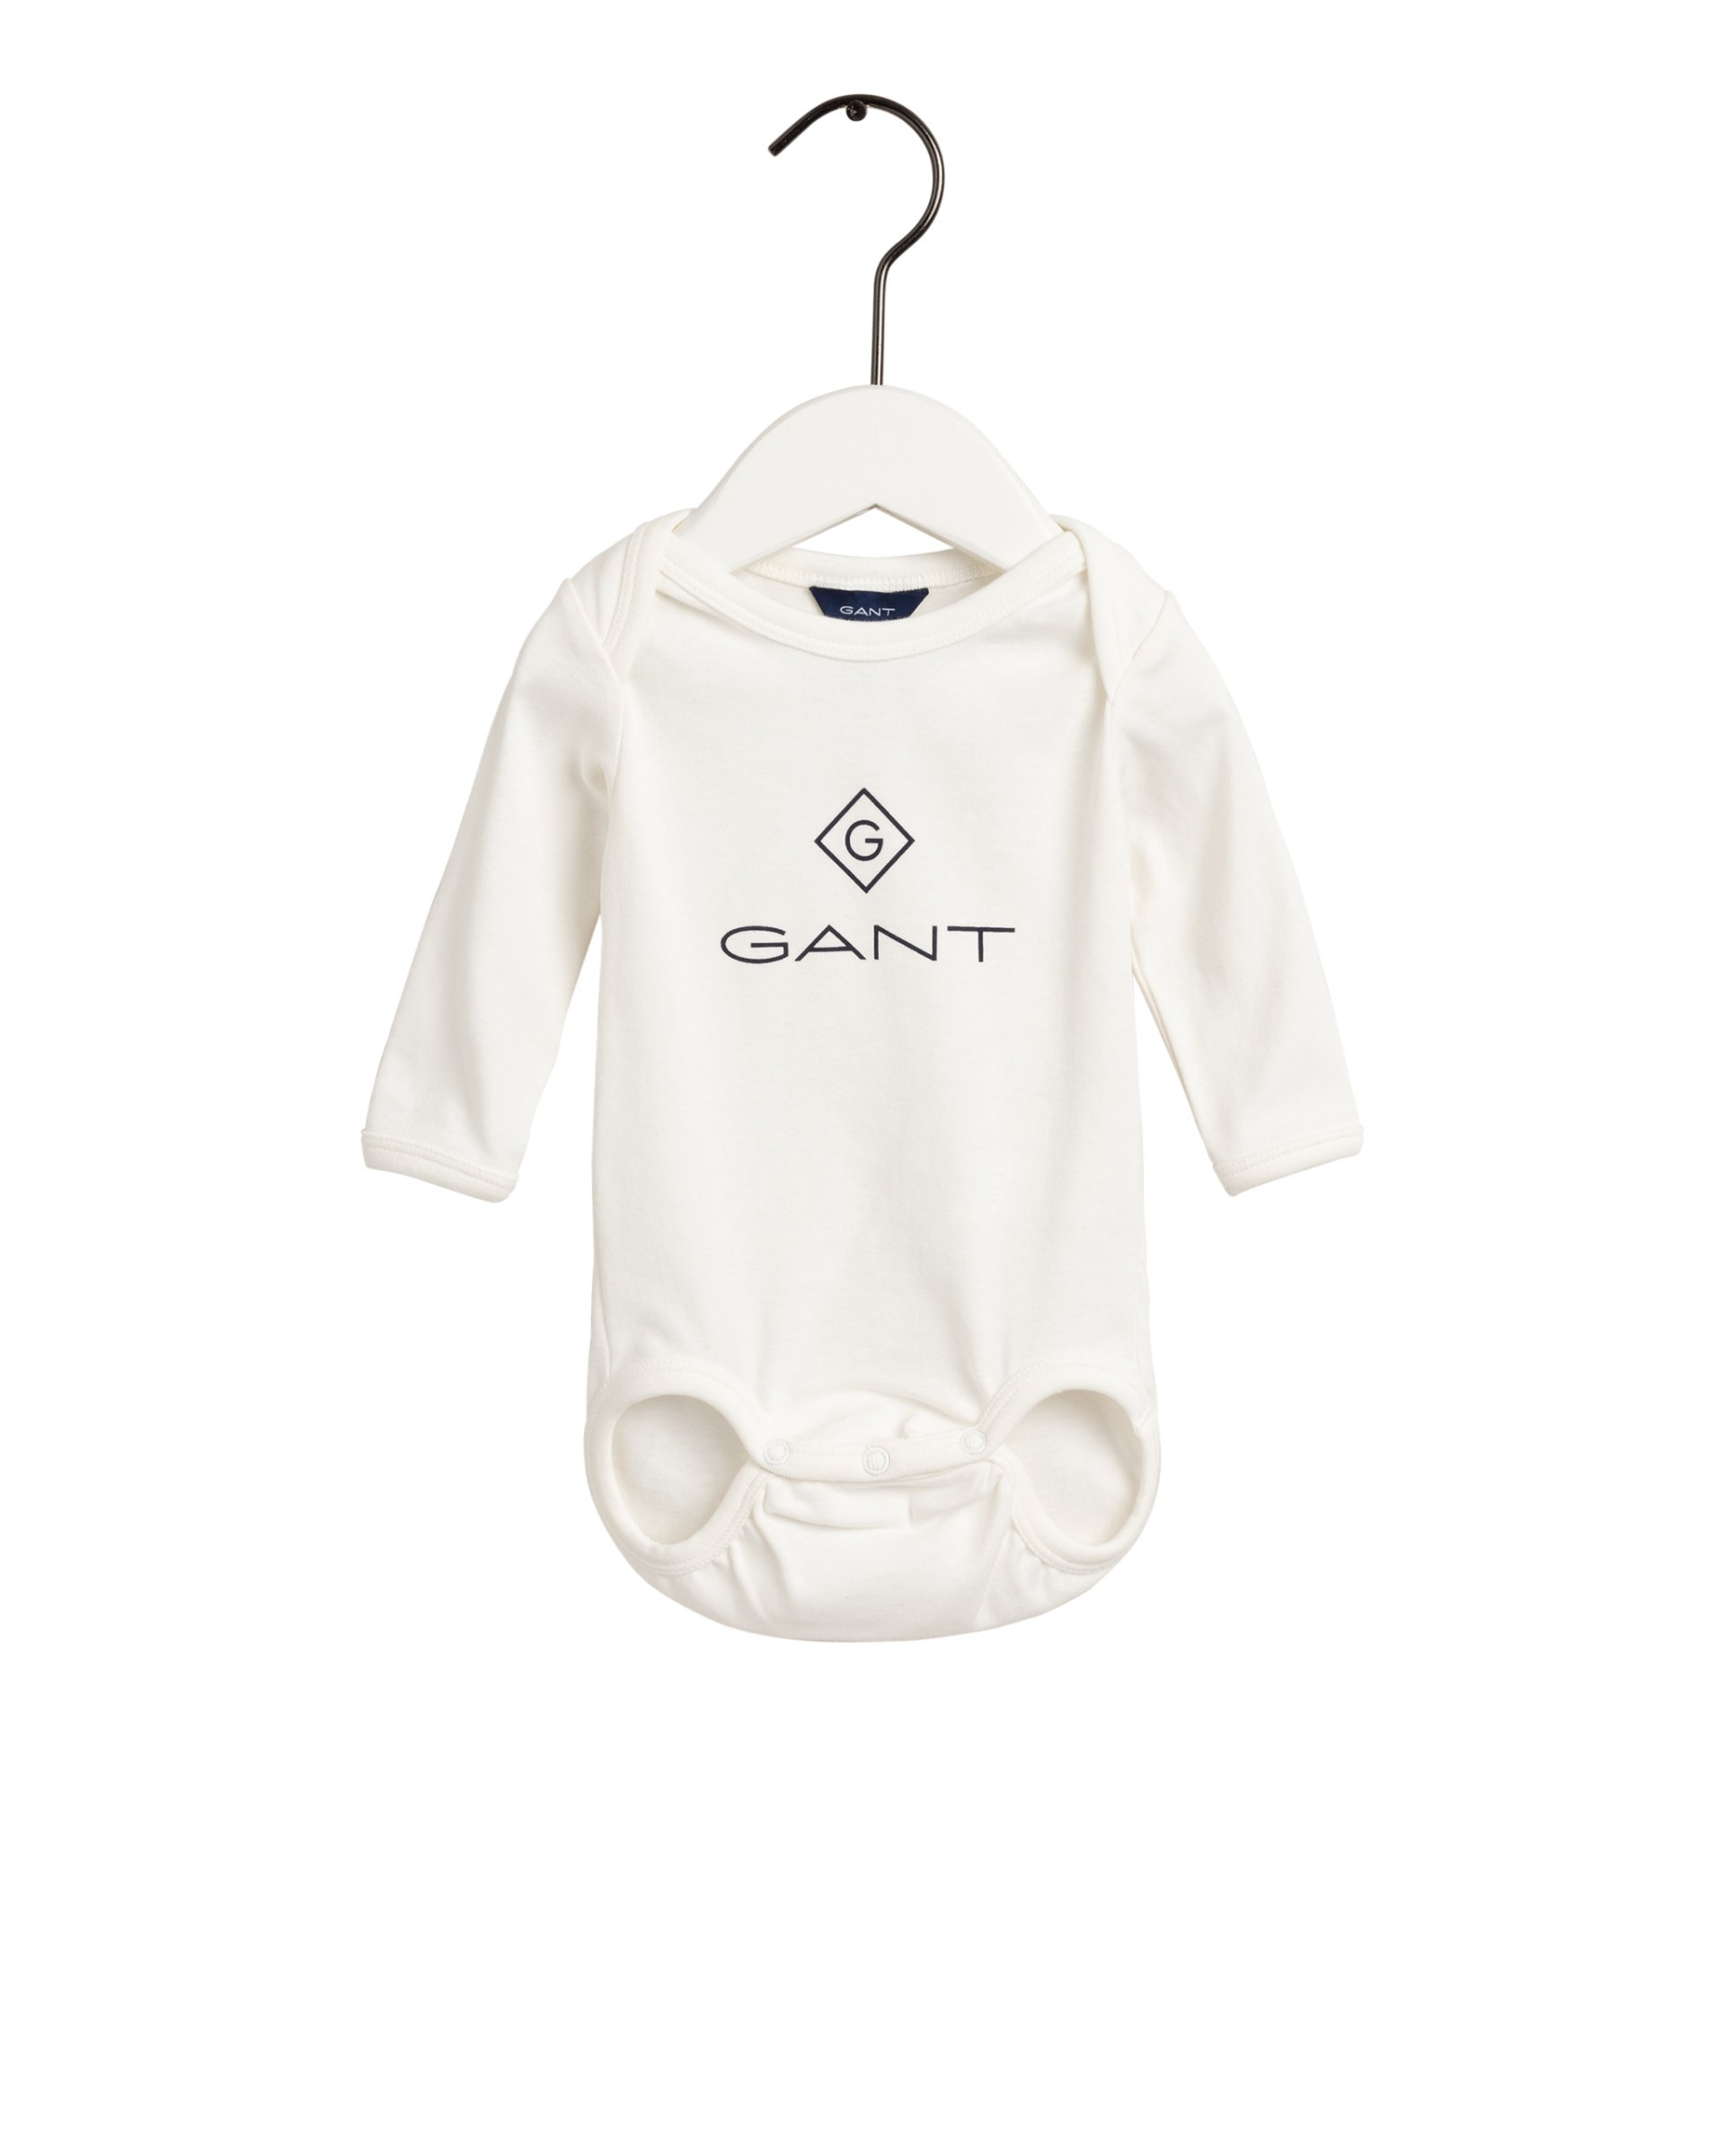 Gant, organic lock-up body